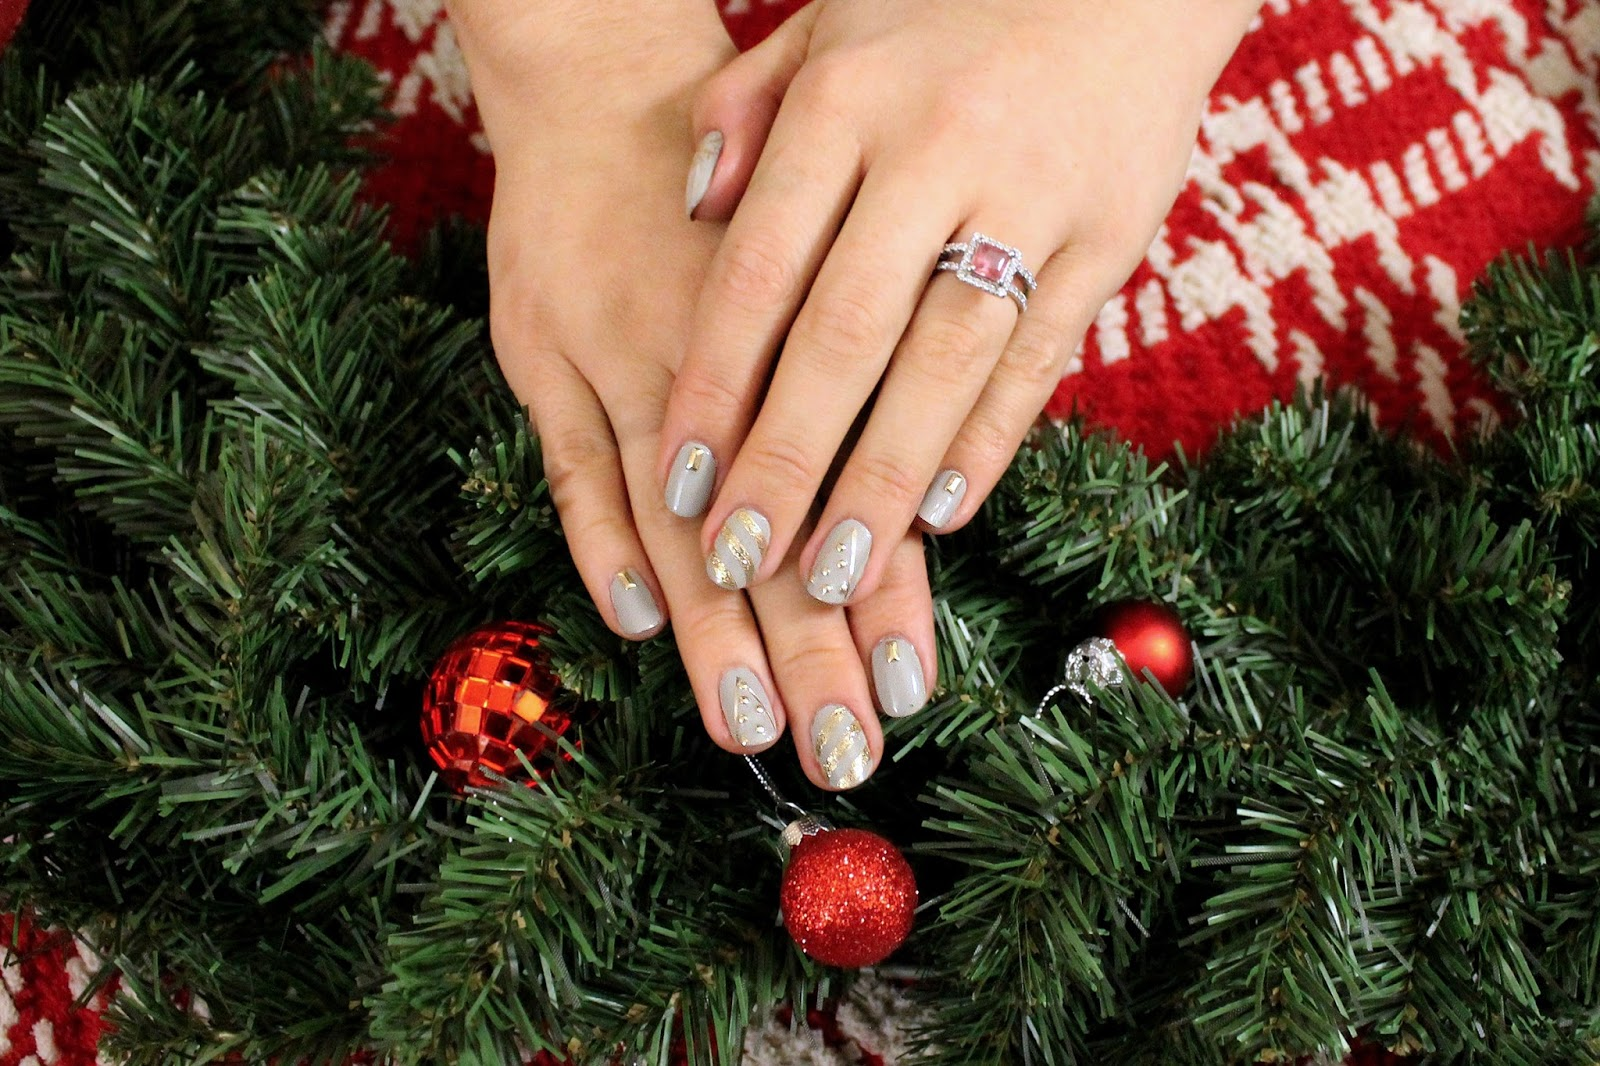 The christmas nail ornament - To Achieve This Look I Started With A Dove Grey Nail Polish From Square Hue Called Lincoln Road On All Ten Fingers From Left To Right This Is What I